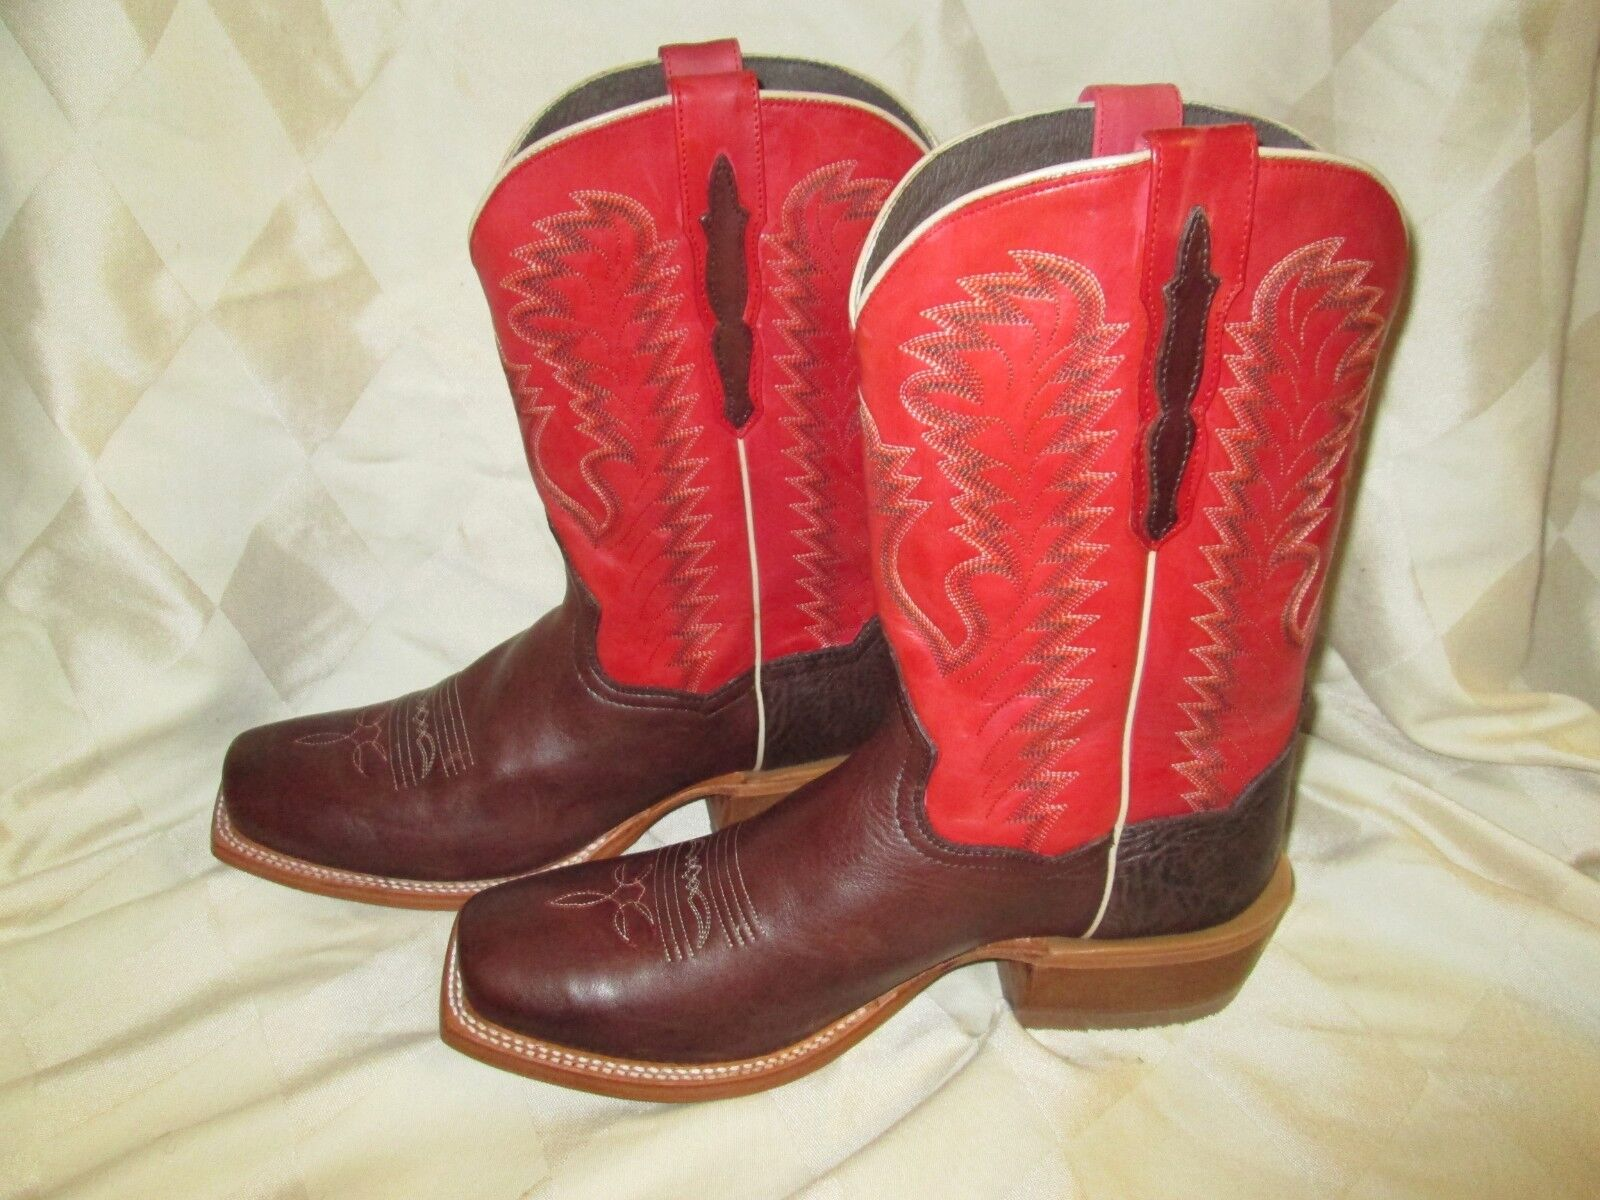 Para Hombre Dan campamento botas de vaquero occidental Post Station DP4122 tamaño 10D